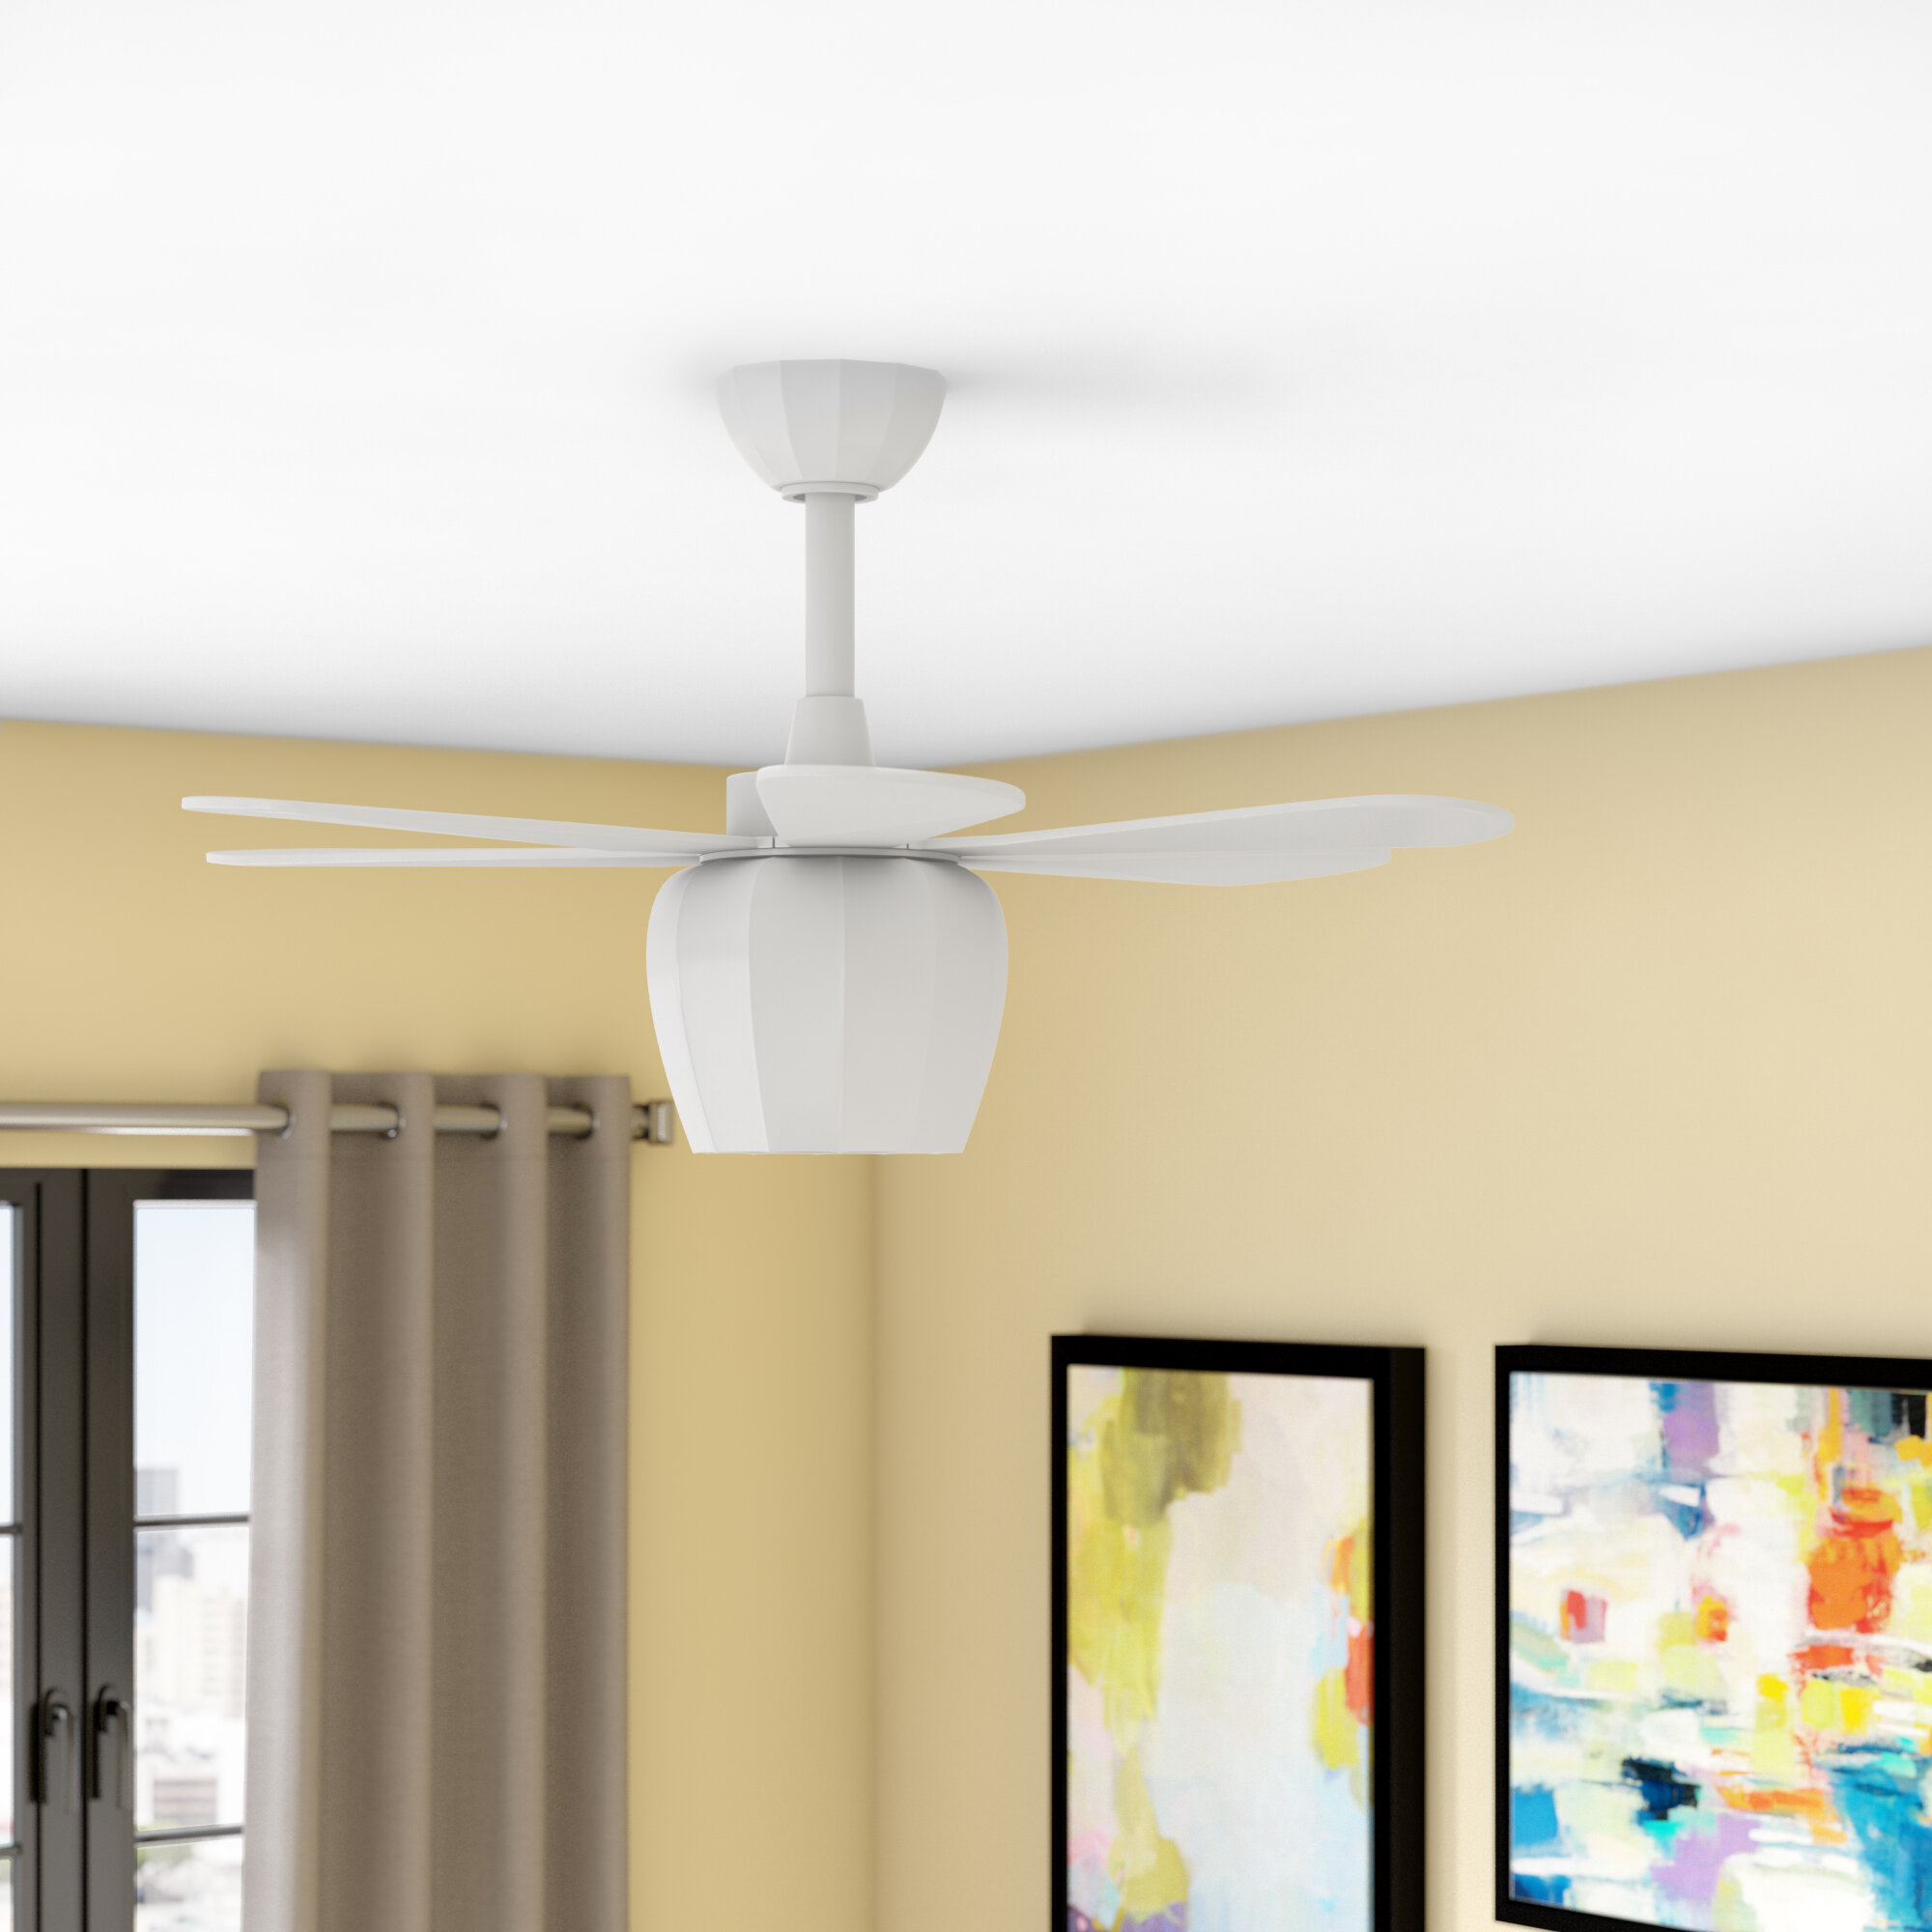 Wrought Studio 36 Hickman 6 Blade Ceiling Fan With Remote Reviews Wayfair